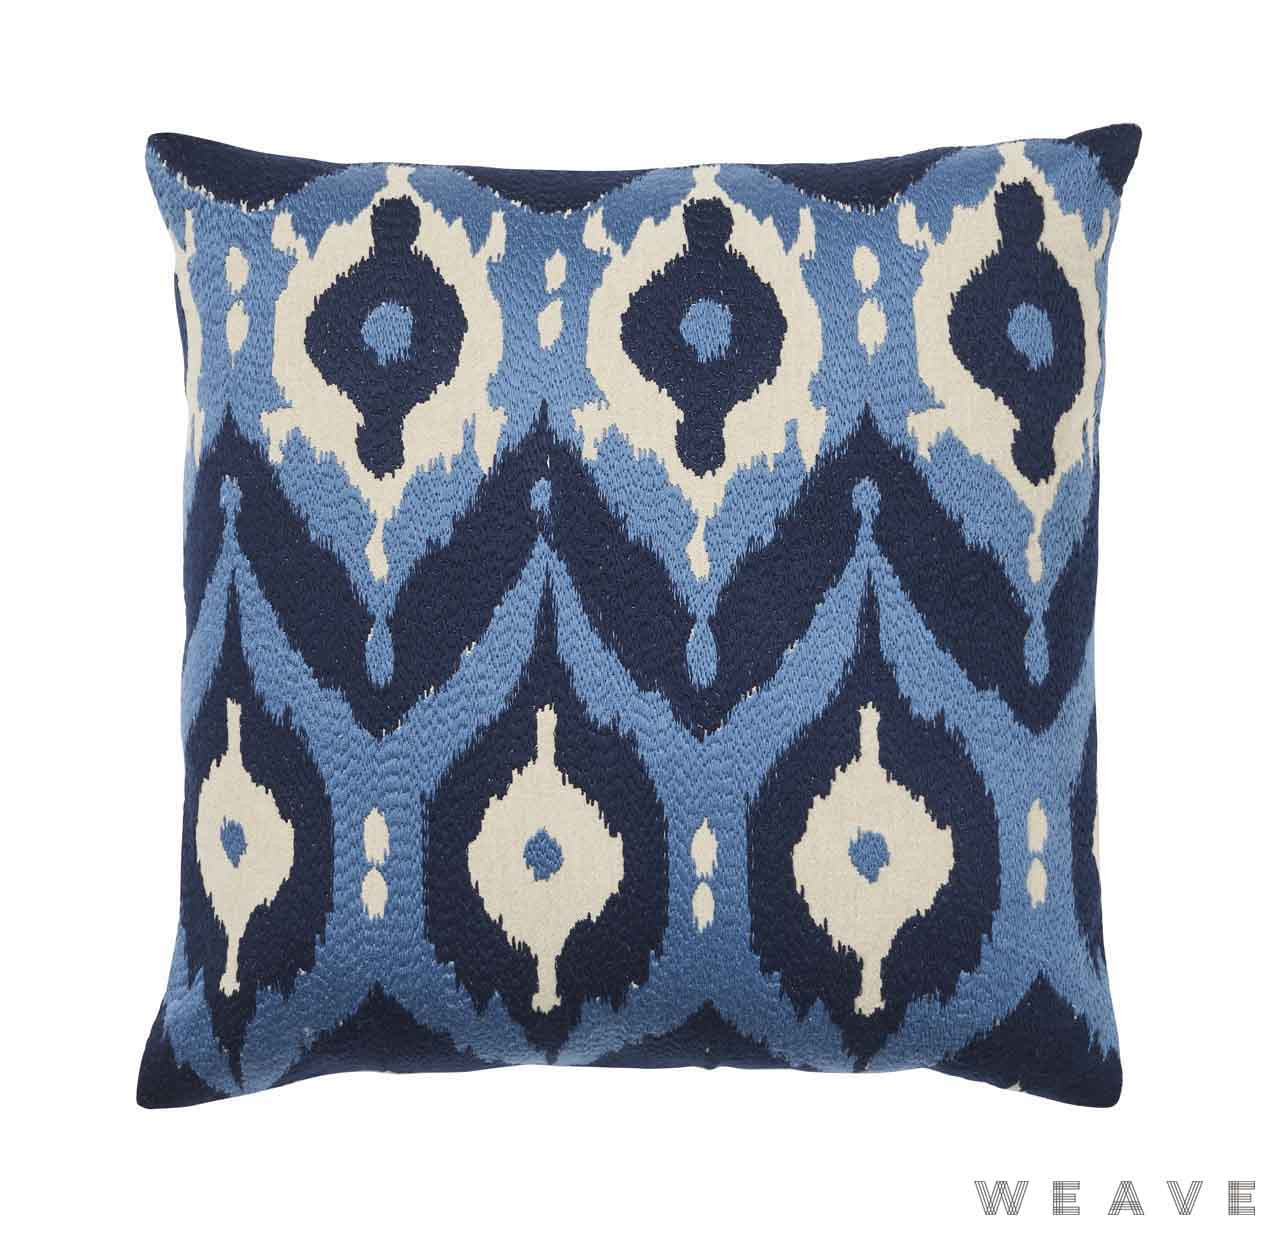 Weave - Nishiki Cushion - Pigment (Pack of 2)  | Cusion Fabric - Blue, Ikat, Mediterranean, Weave